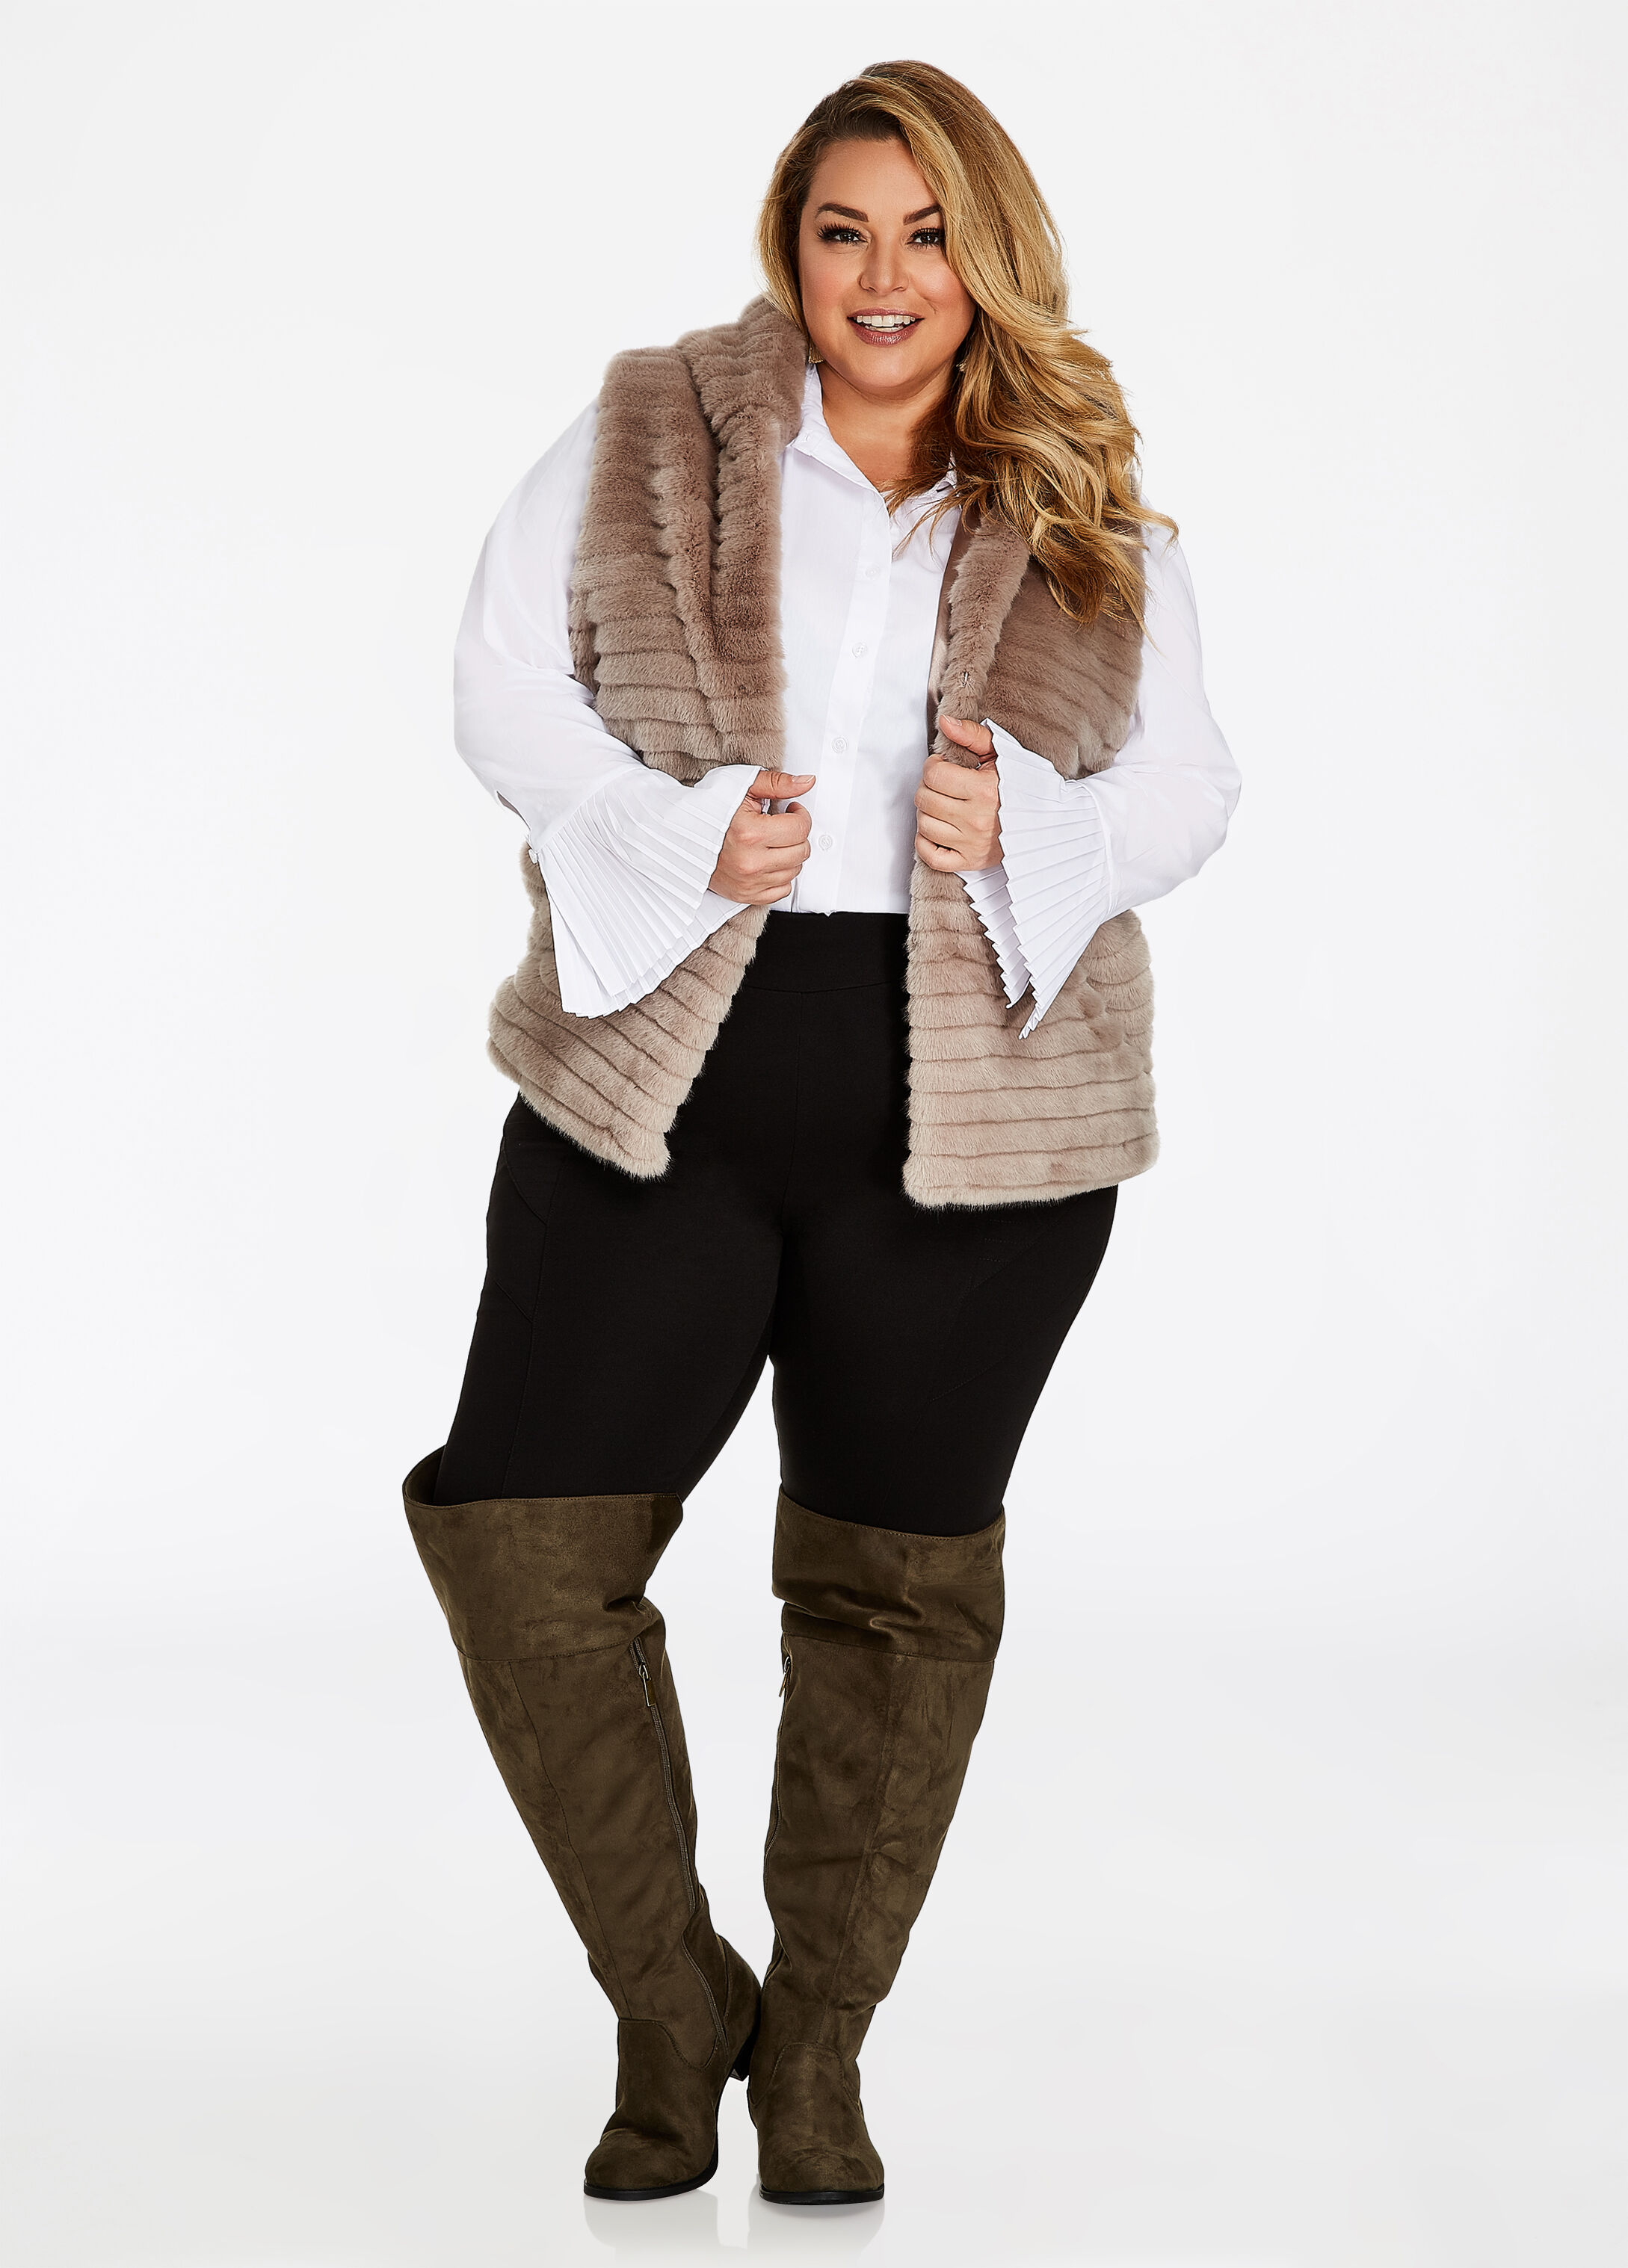 Plus Size Outfits - Hooded Faux Fur Vest with Leggings and Boots